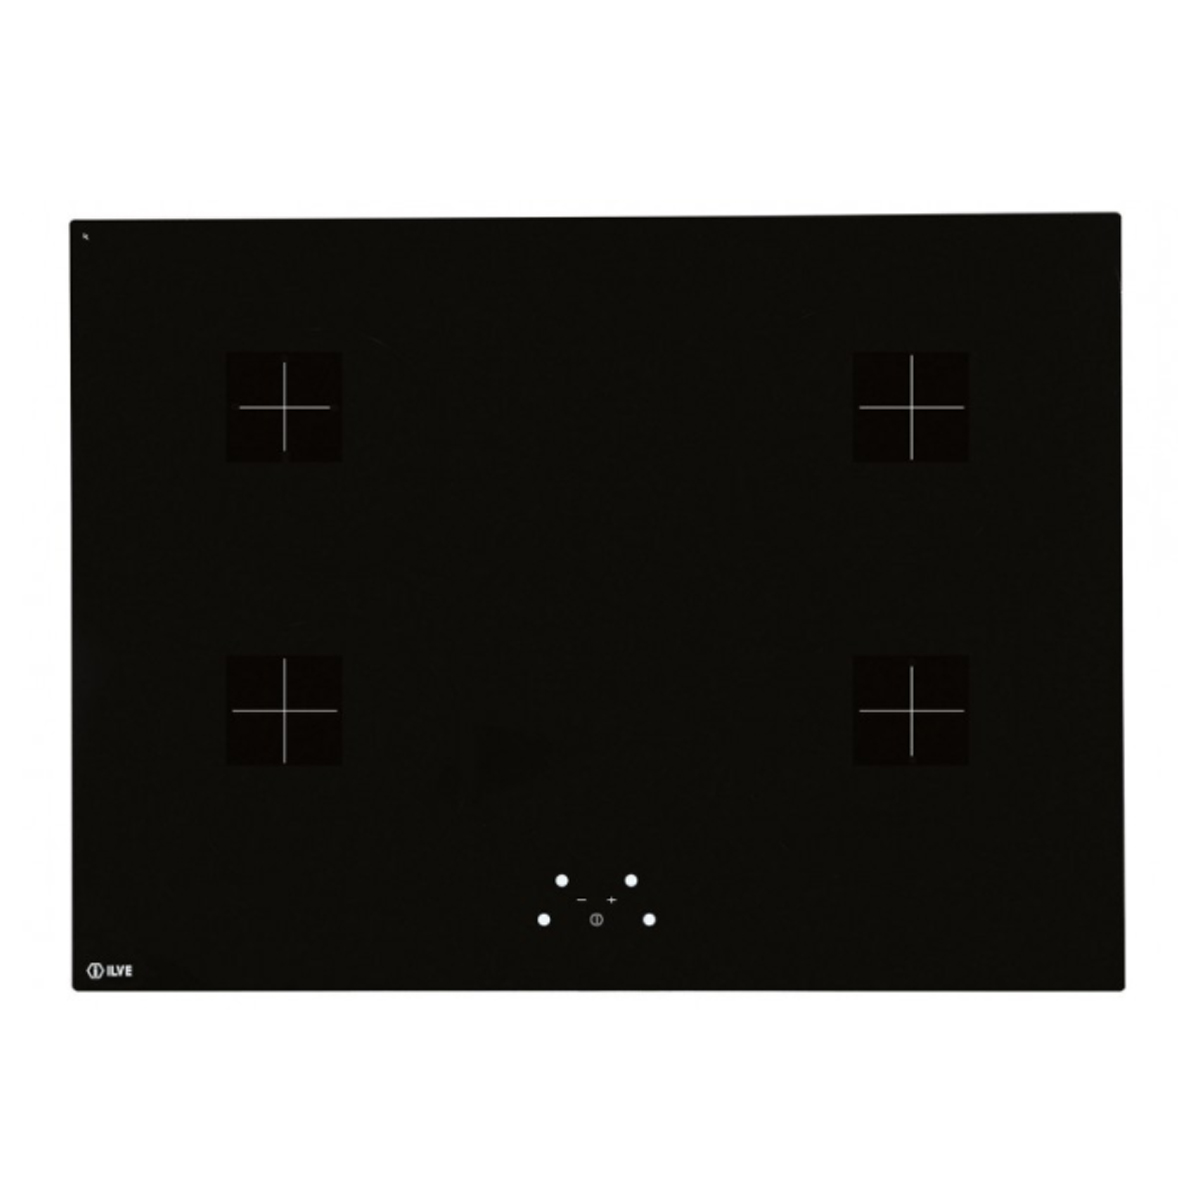 Ilve INB74B 70cm Induction Cooktop with Boost